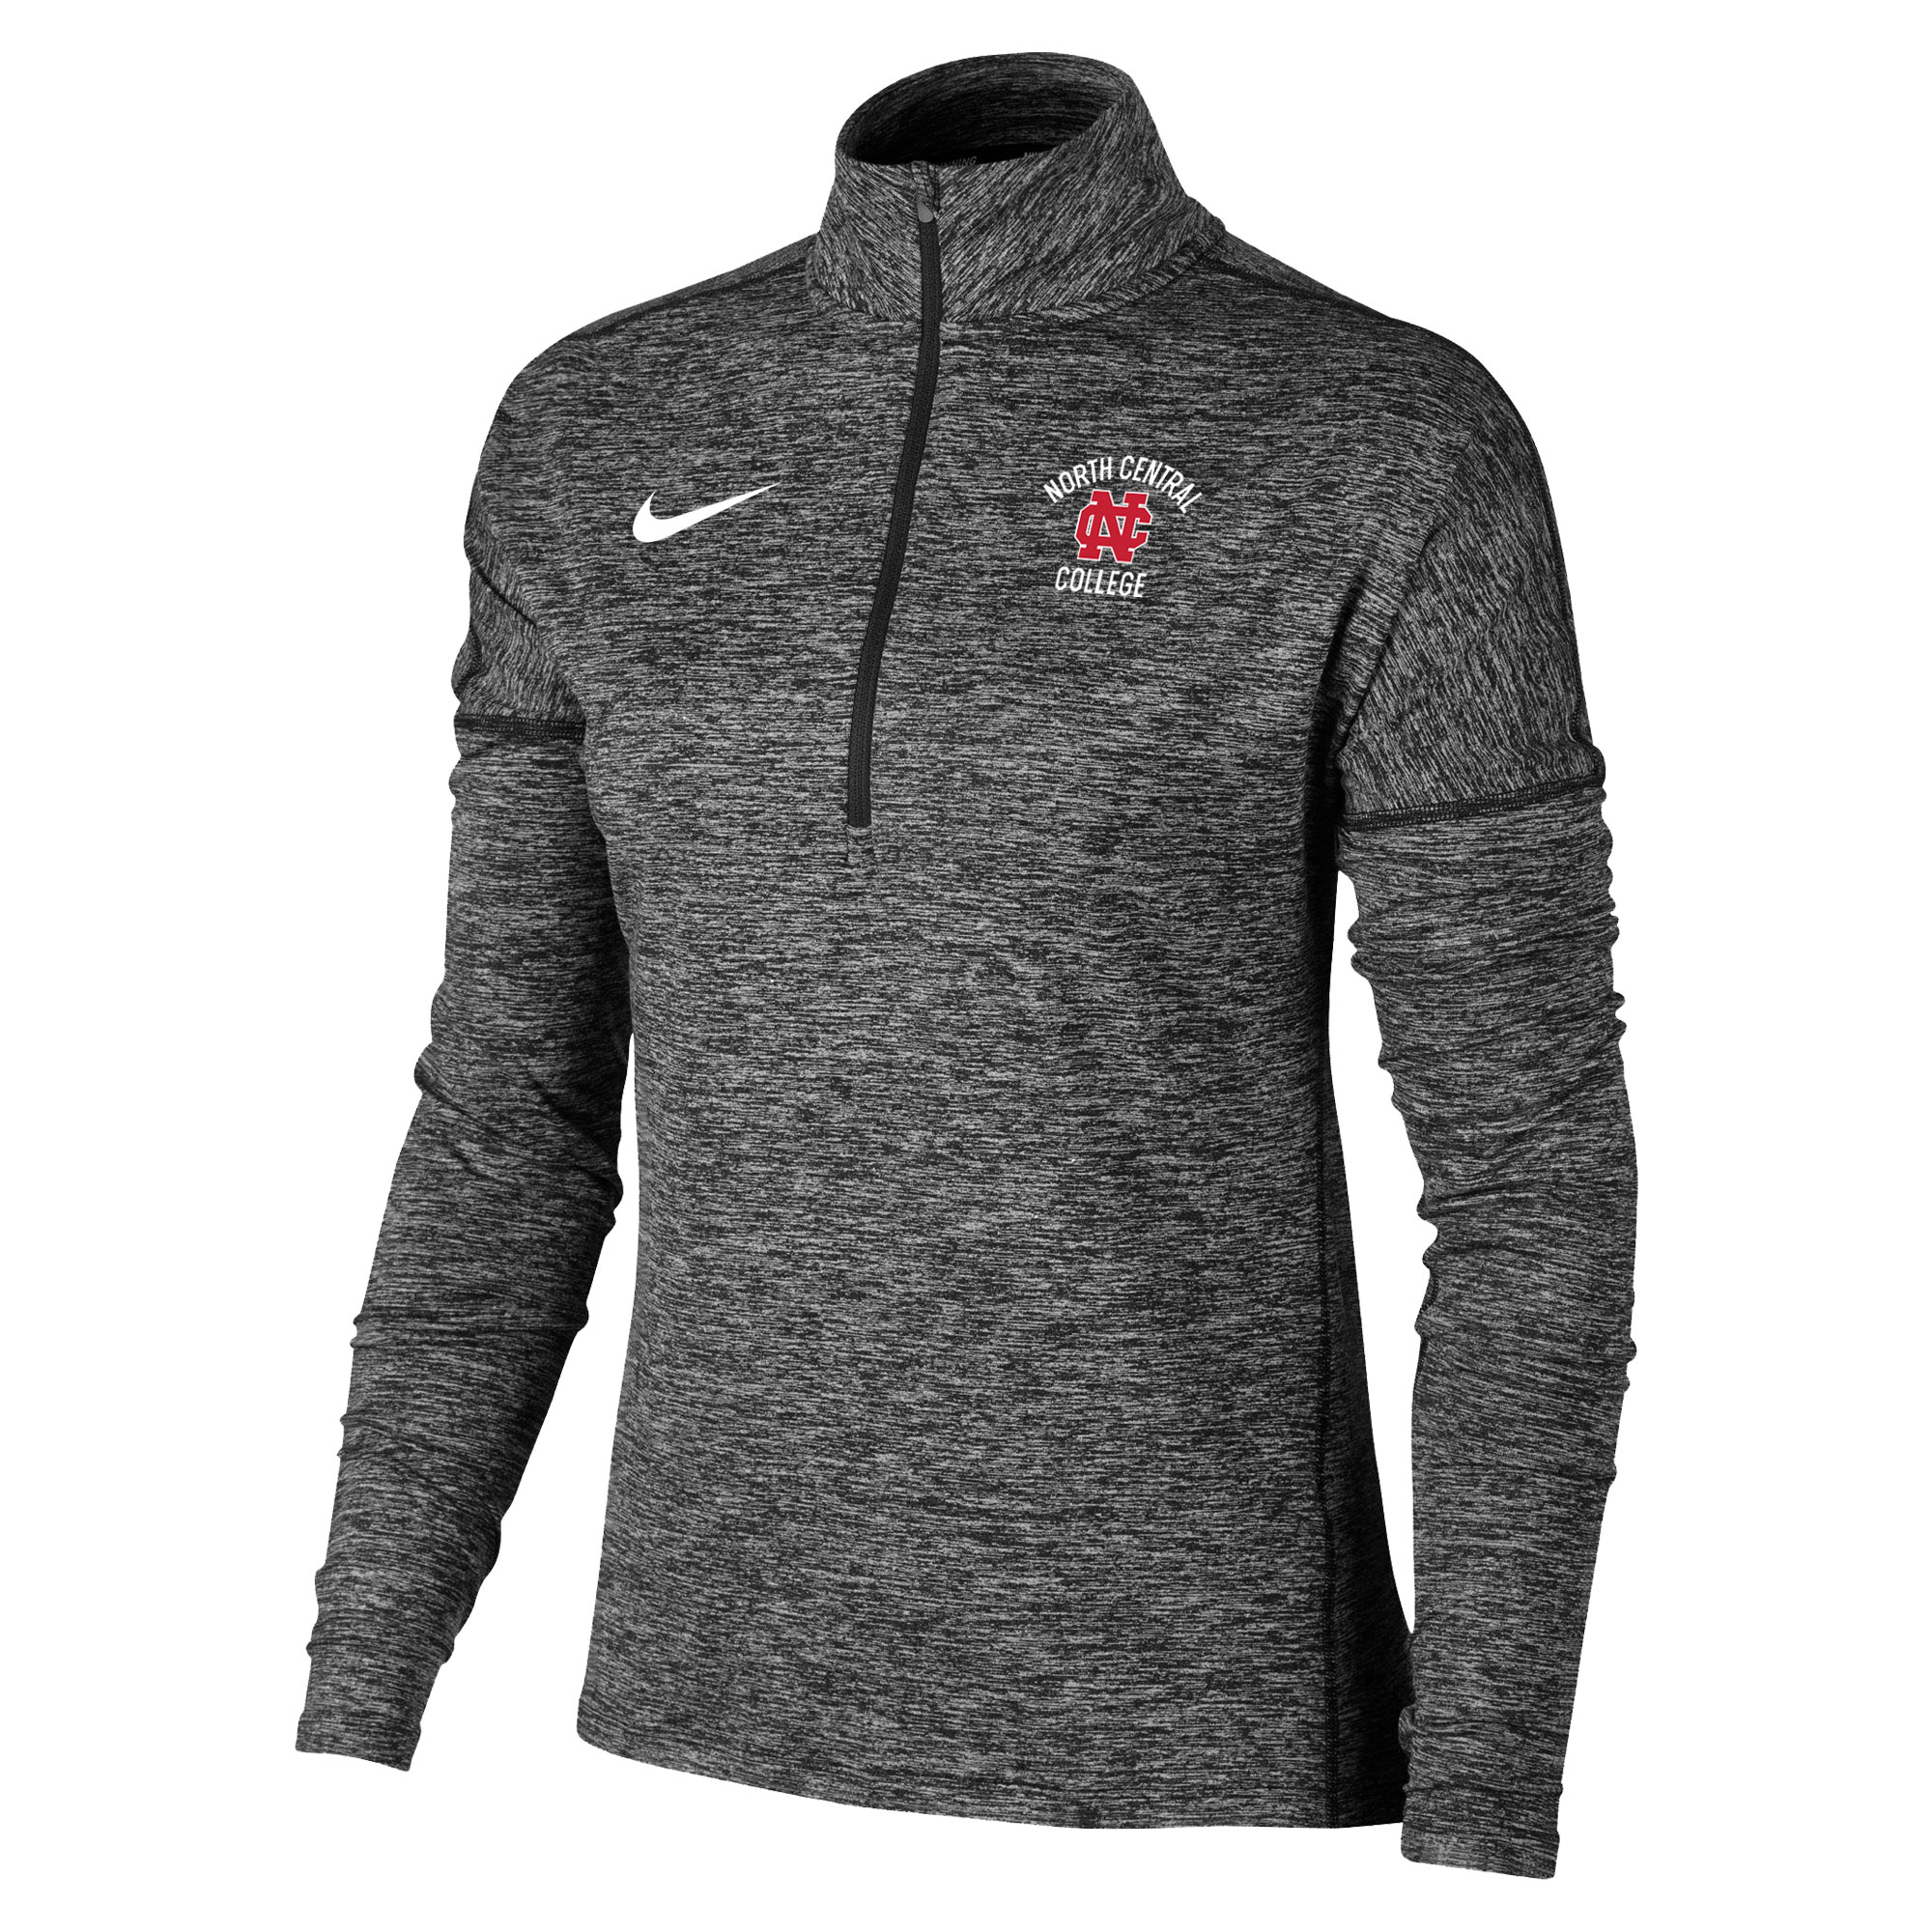 Image for the North Central College Women's Dry Element Heather 1/2 Zip by Nike product